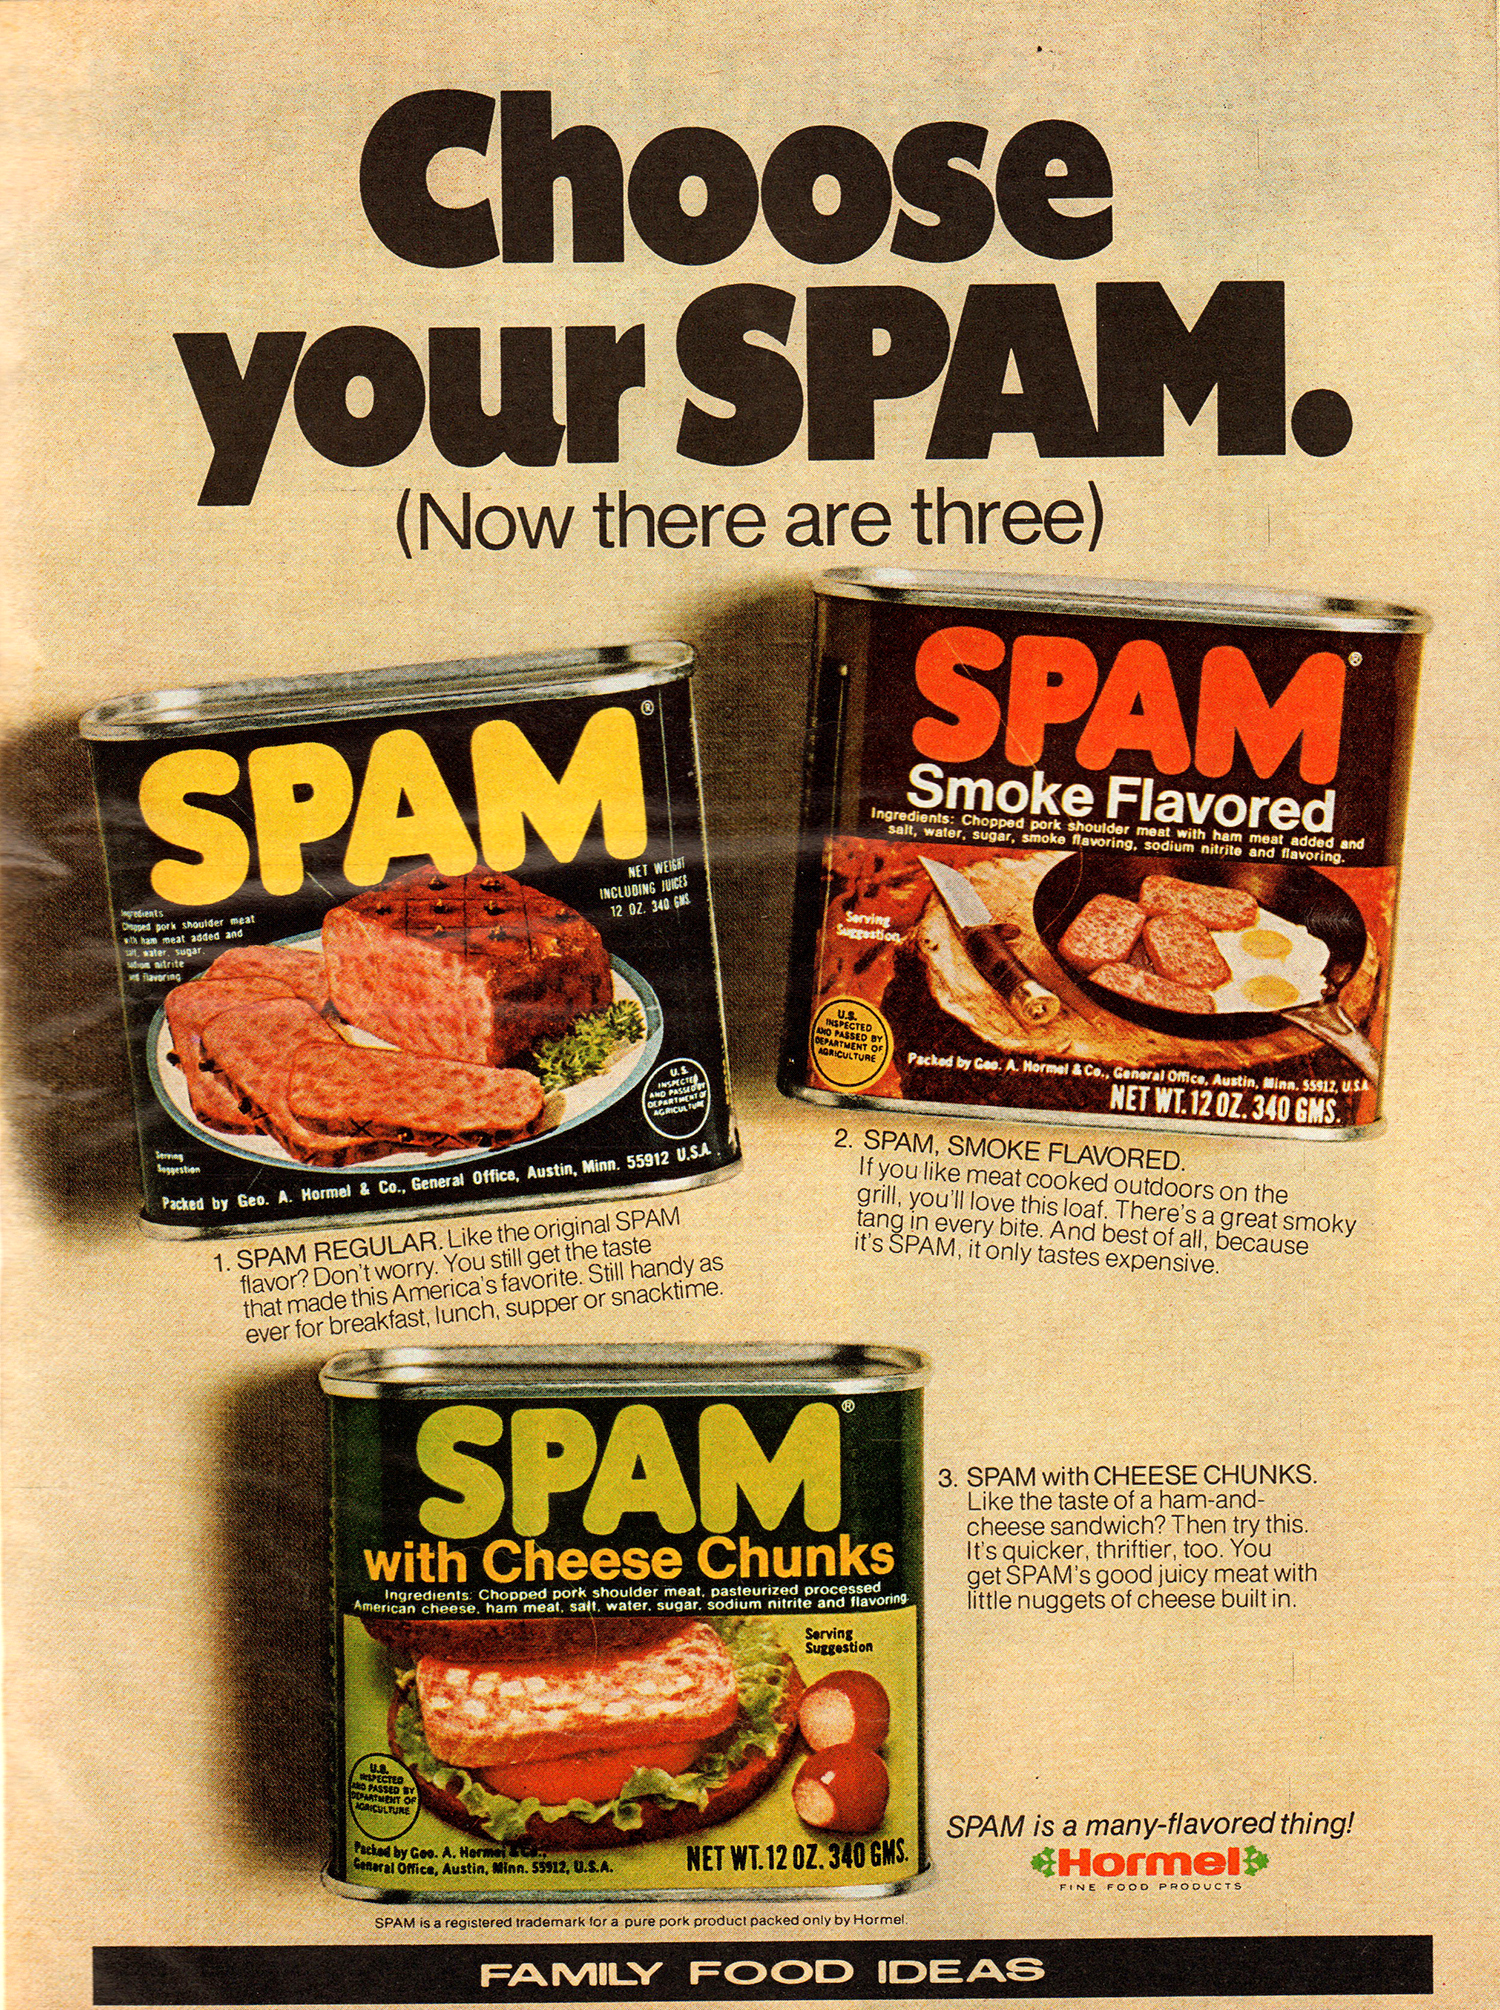 What Does SPAM Mean Hormel Claims That The Meaning Of Name Is Known By Only A Small Circle Former Foods Executives